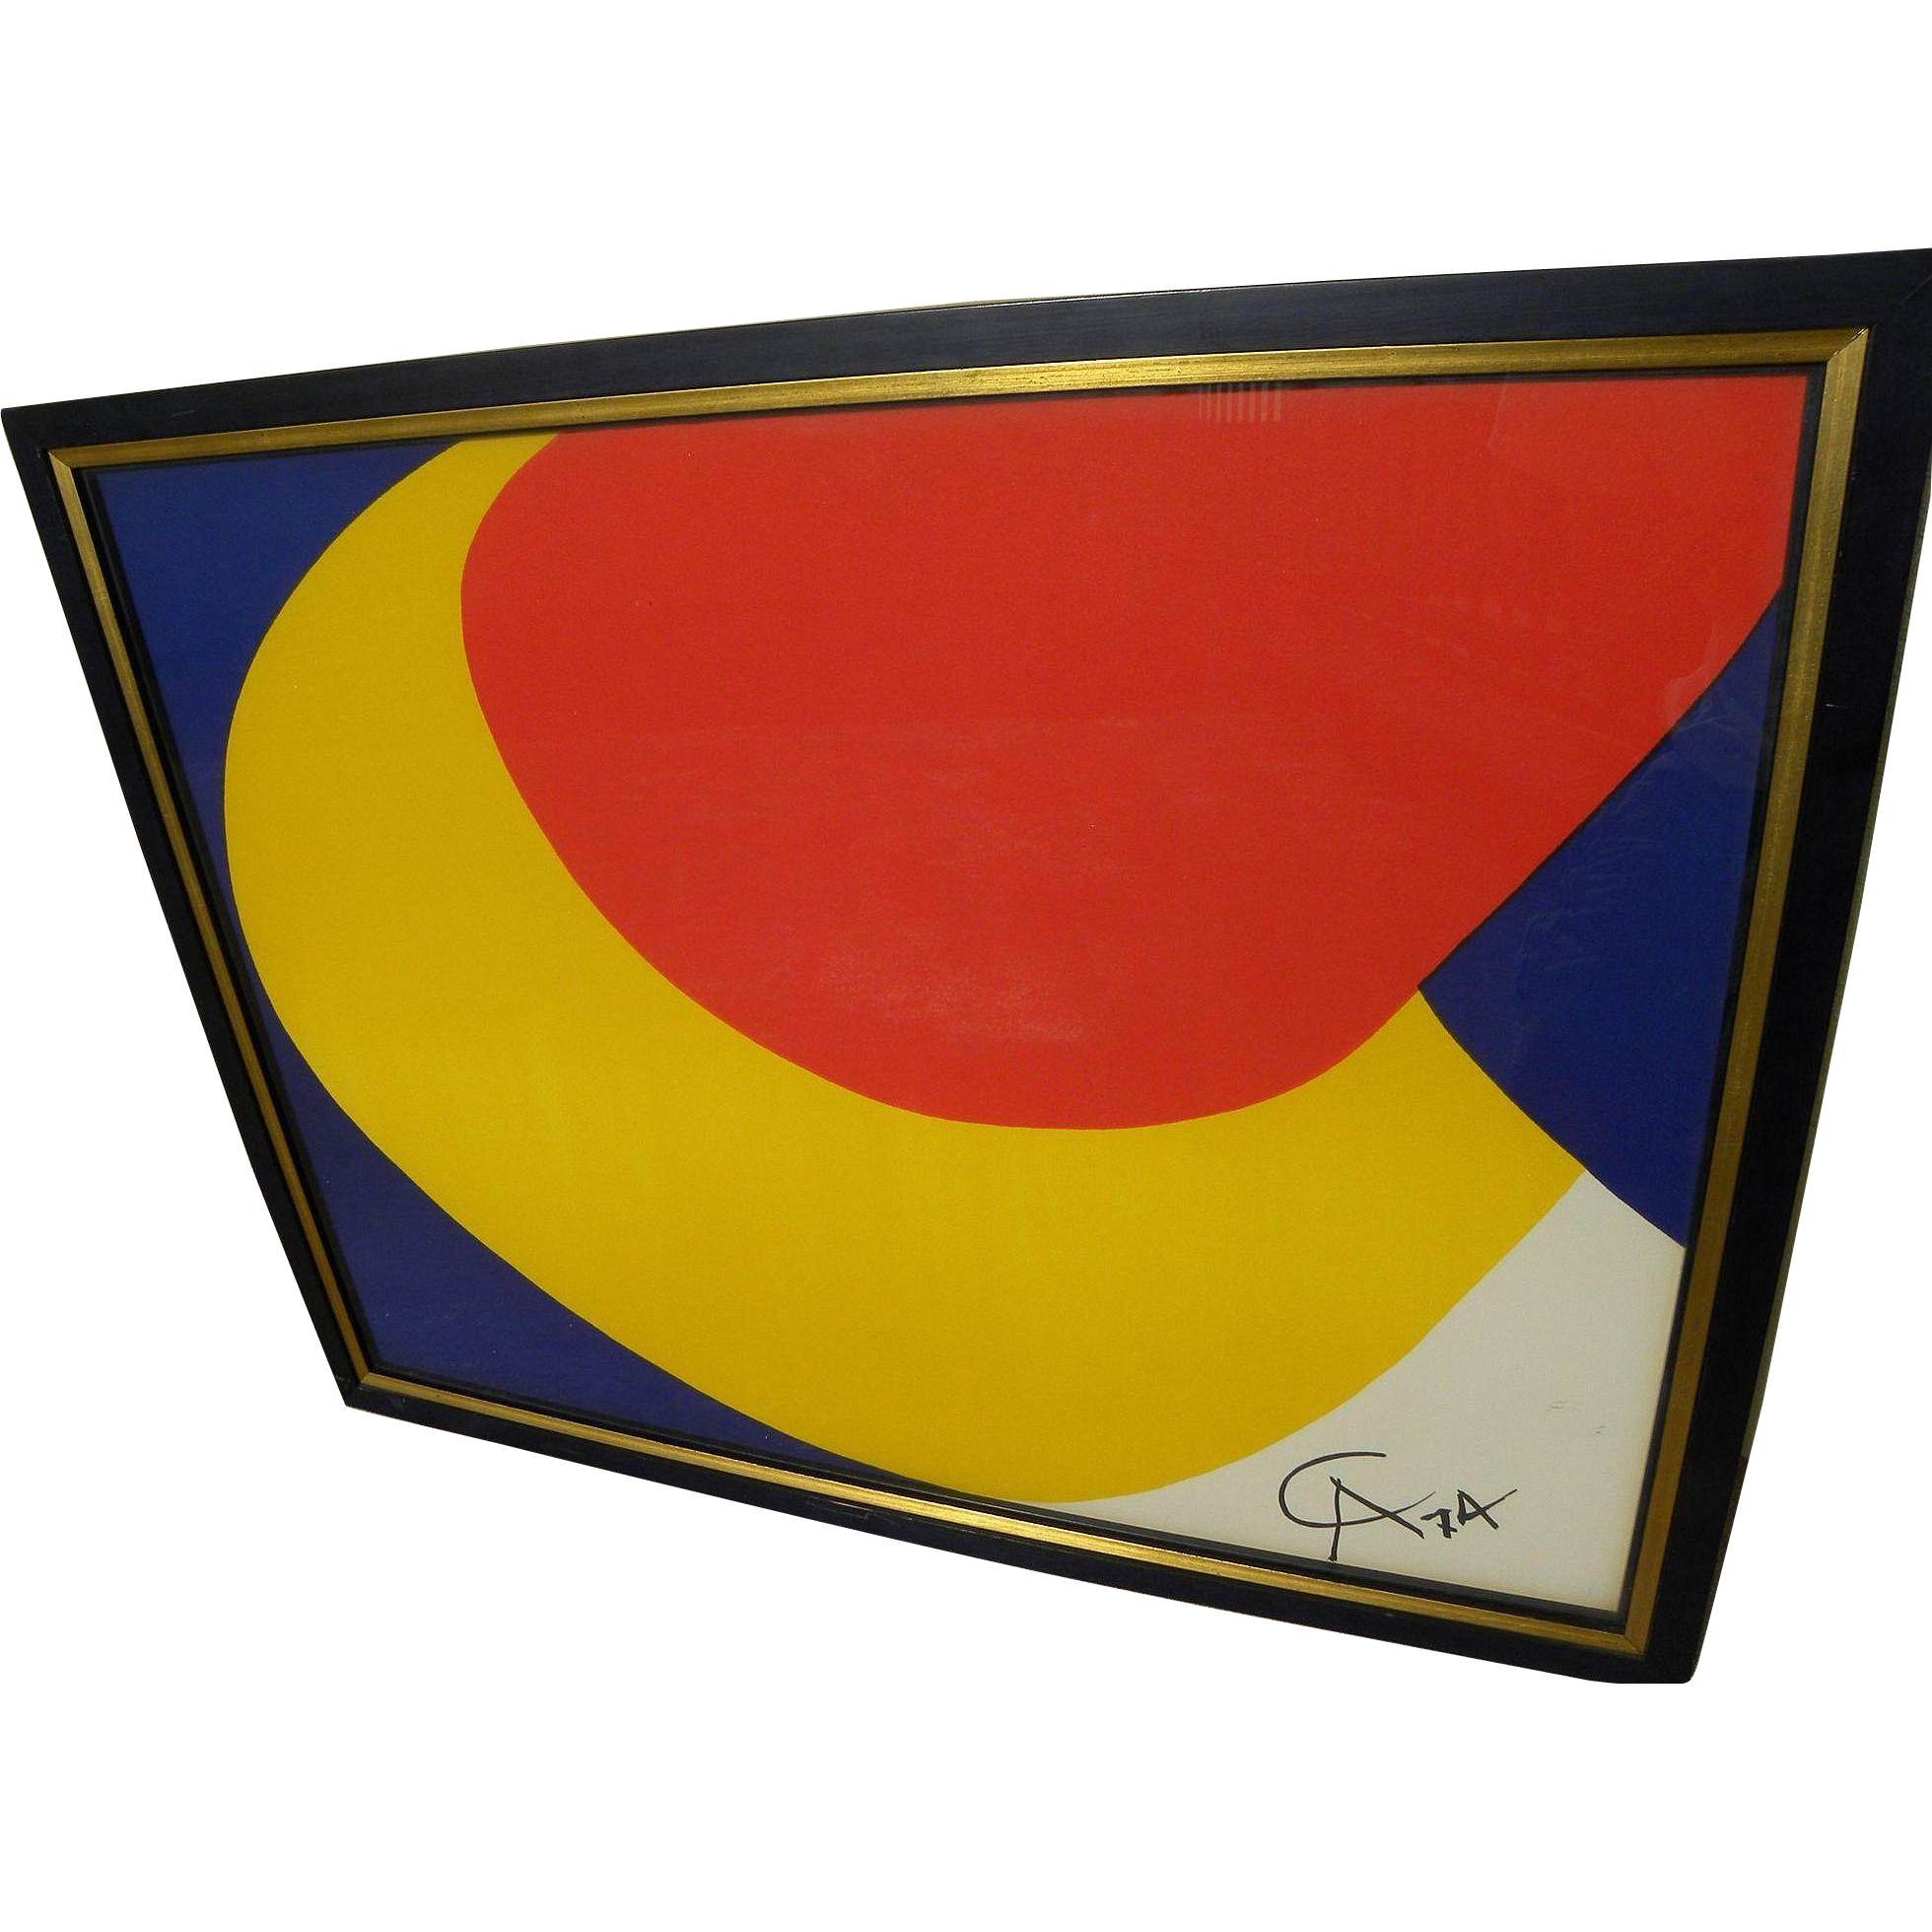 """ALEXANDER CALDER (1898-1976) lithograph print """"Convection""""  from """"Flying Colors"""" series 1974 signed in the plate"""